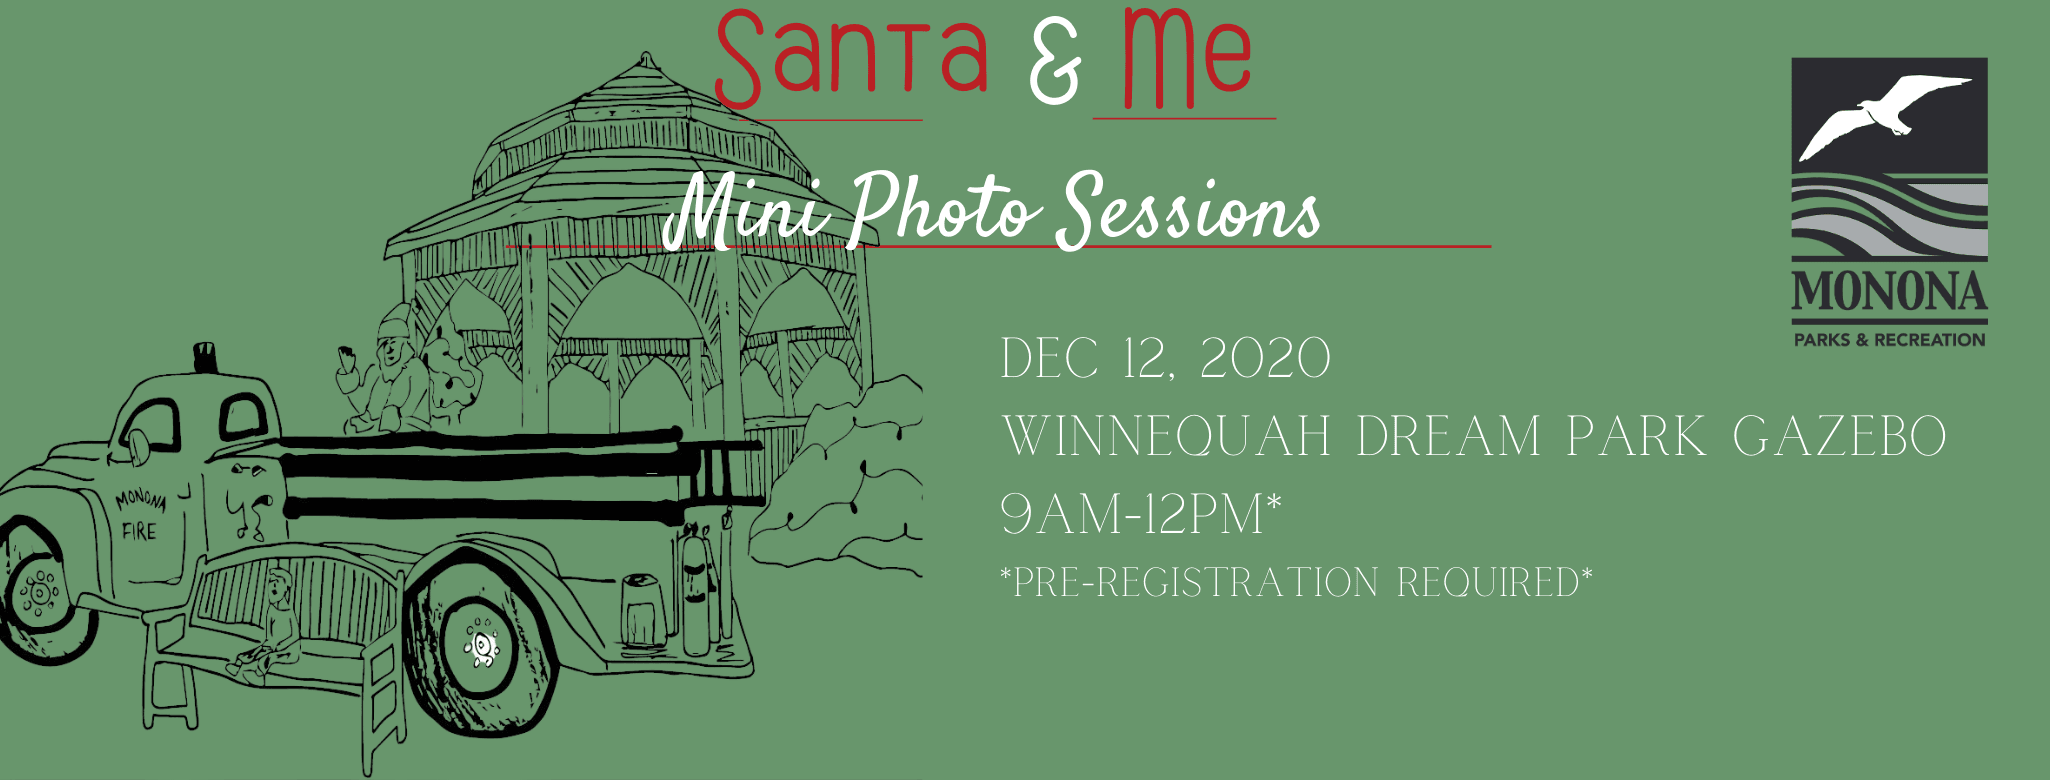 Santa & Me Mini Photo Sessions